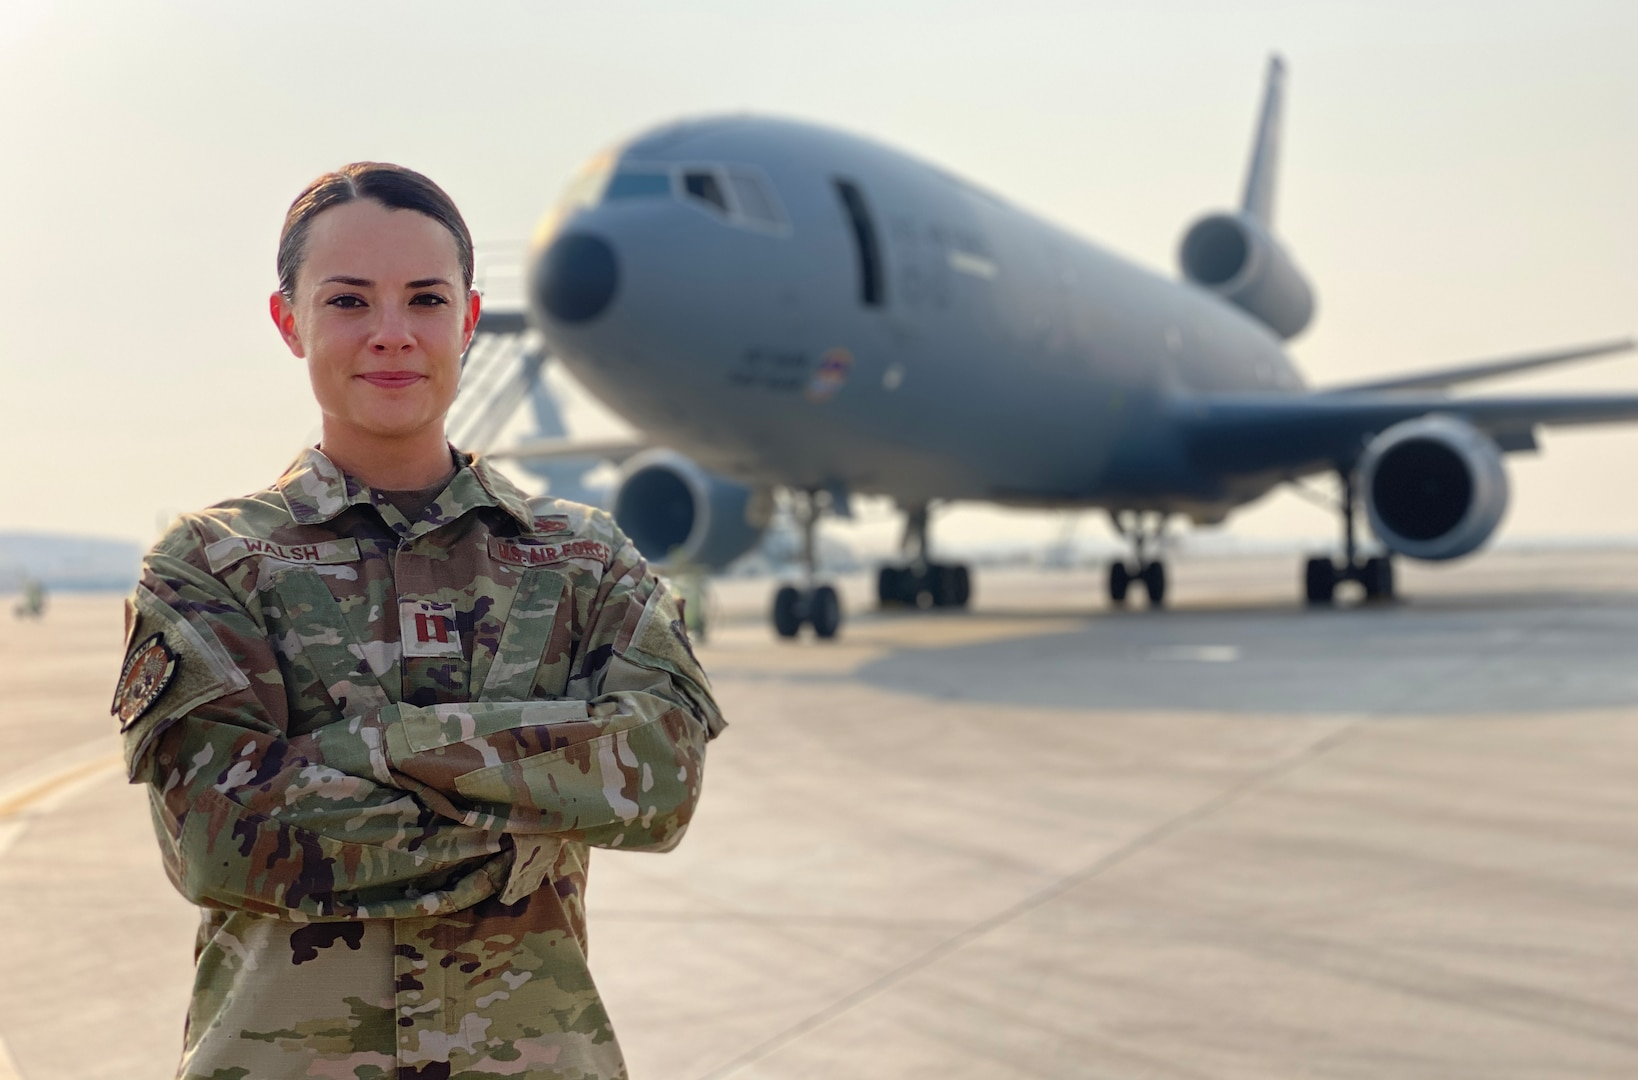 Female service member poses in front of aircraft